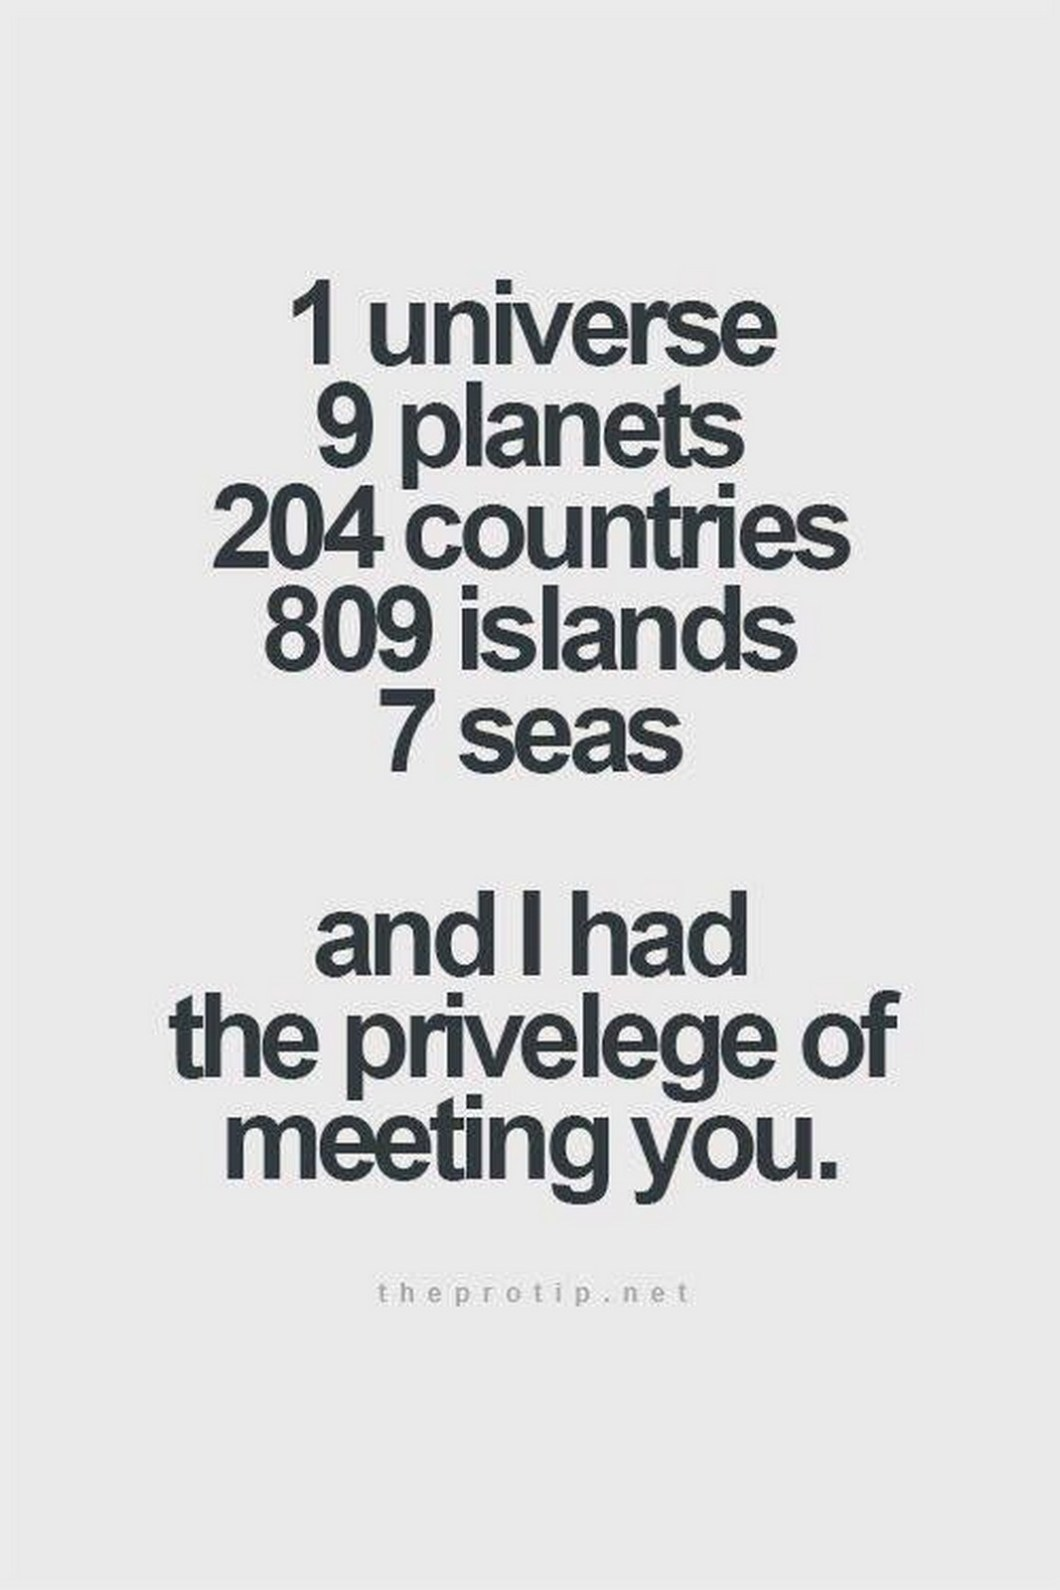 """55 Romantic Quotes - """"1 universe, 9 planets, 204 countries, 809 islands, 7 seas, and I had the privelege of meeting you."""""""